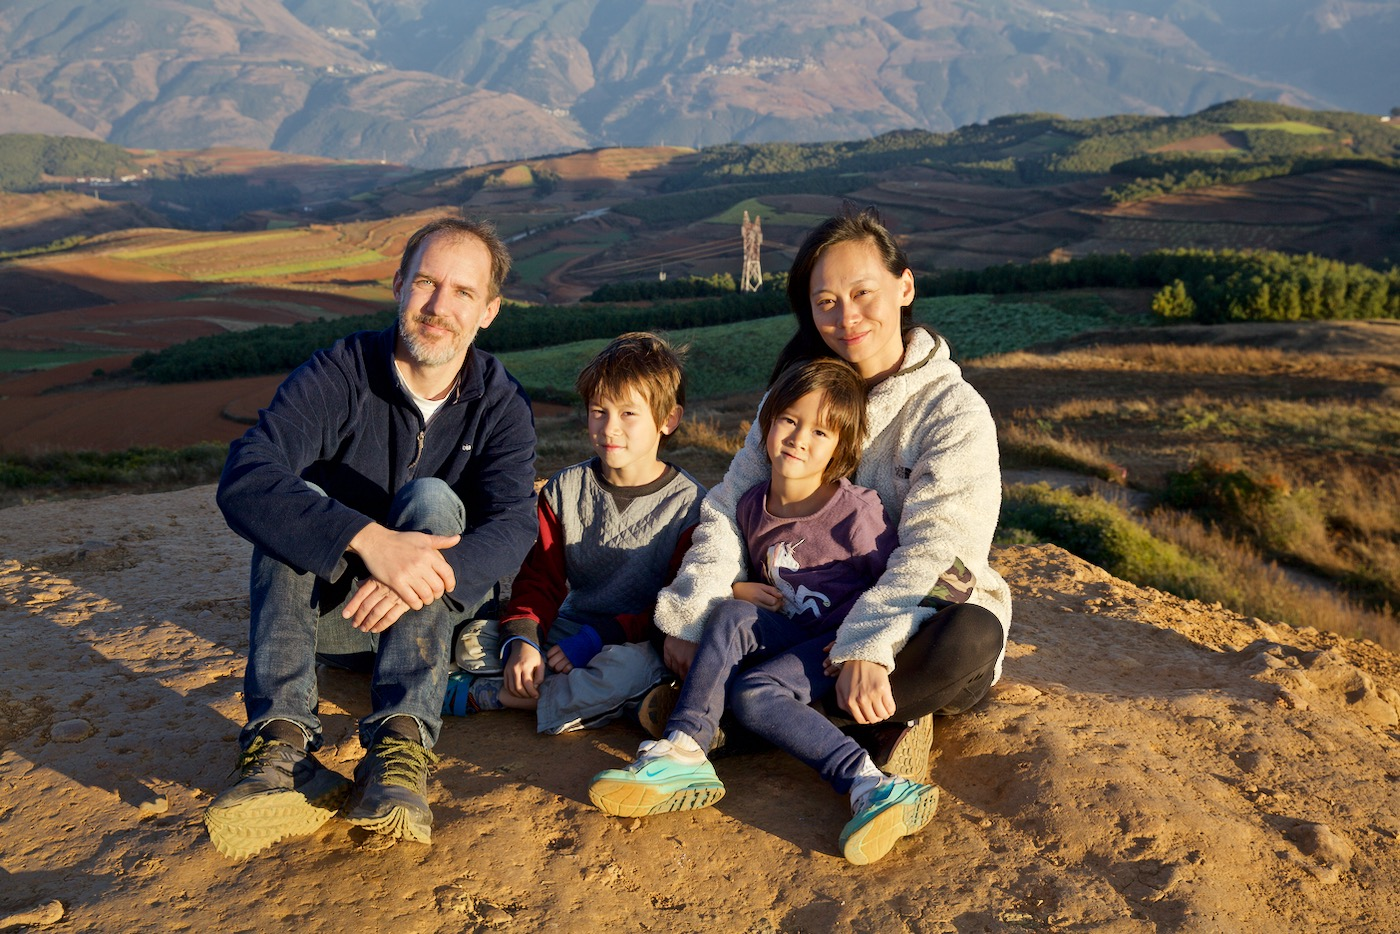 Benson family. Dongchuan, Yunnan, China